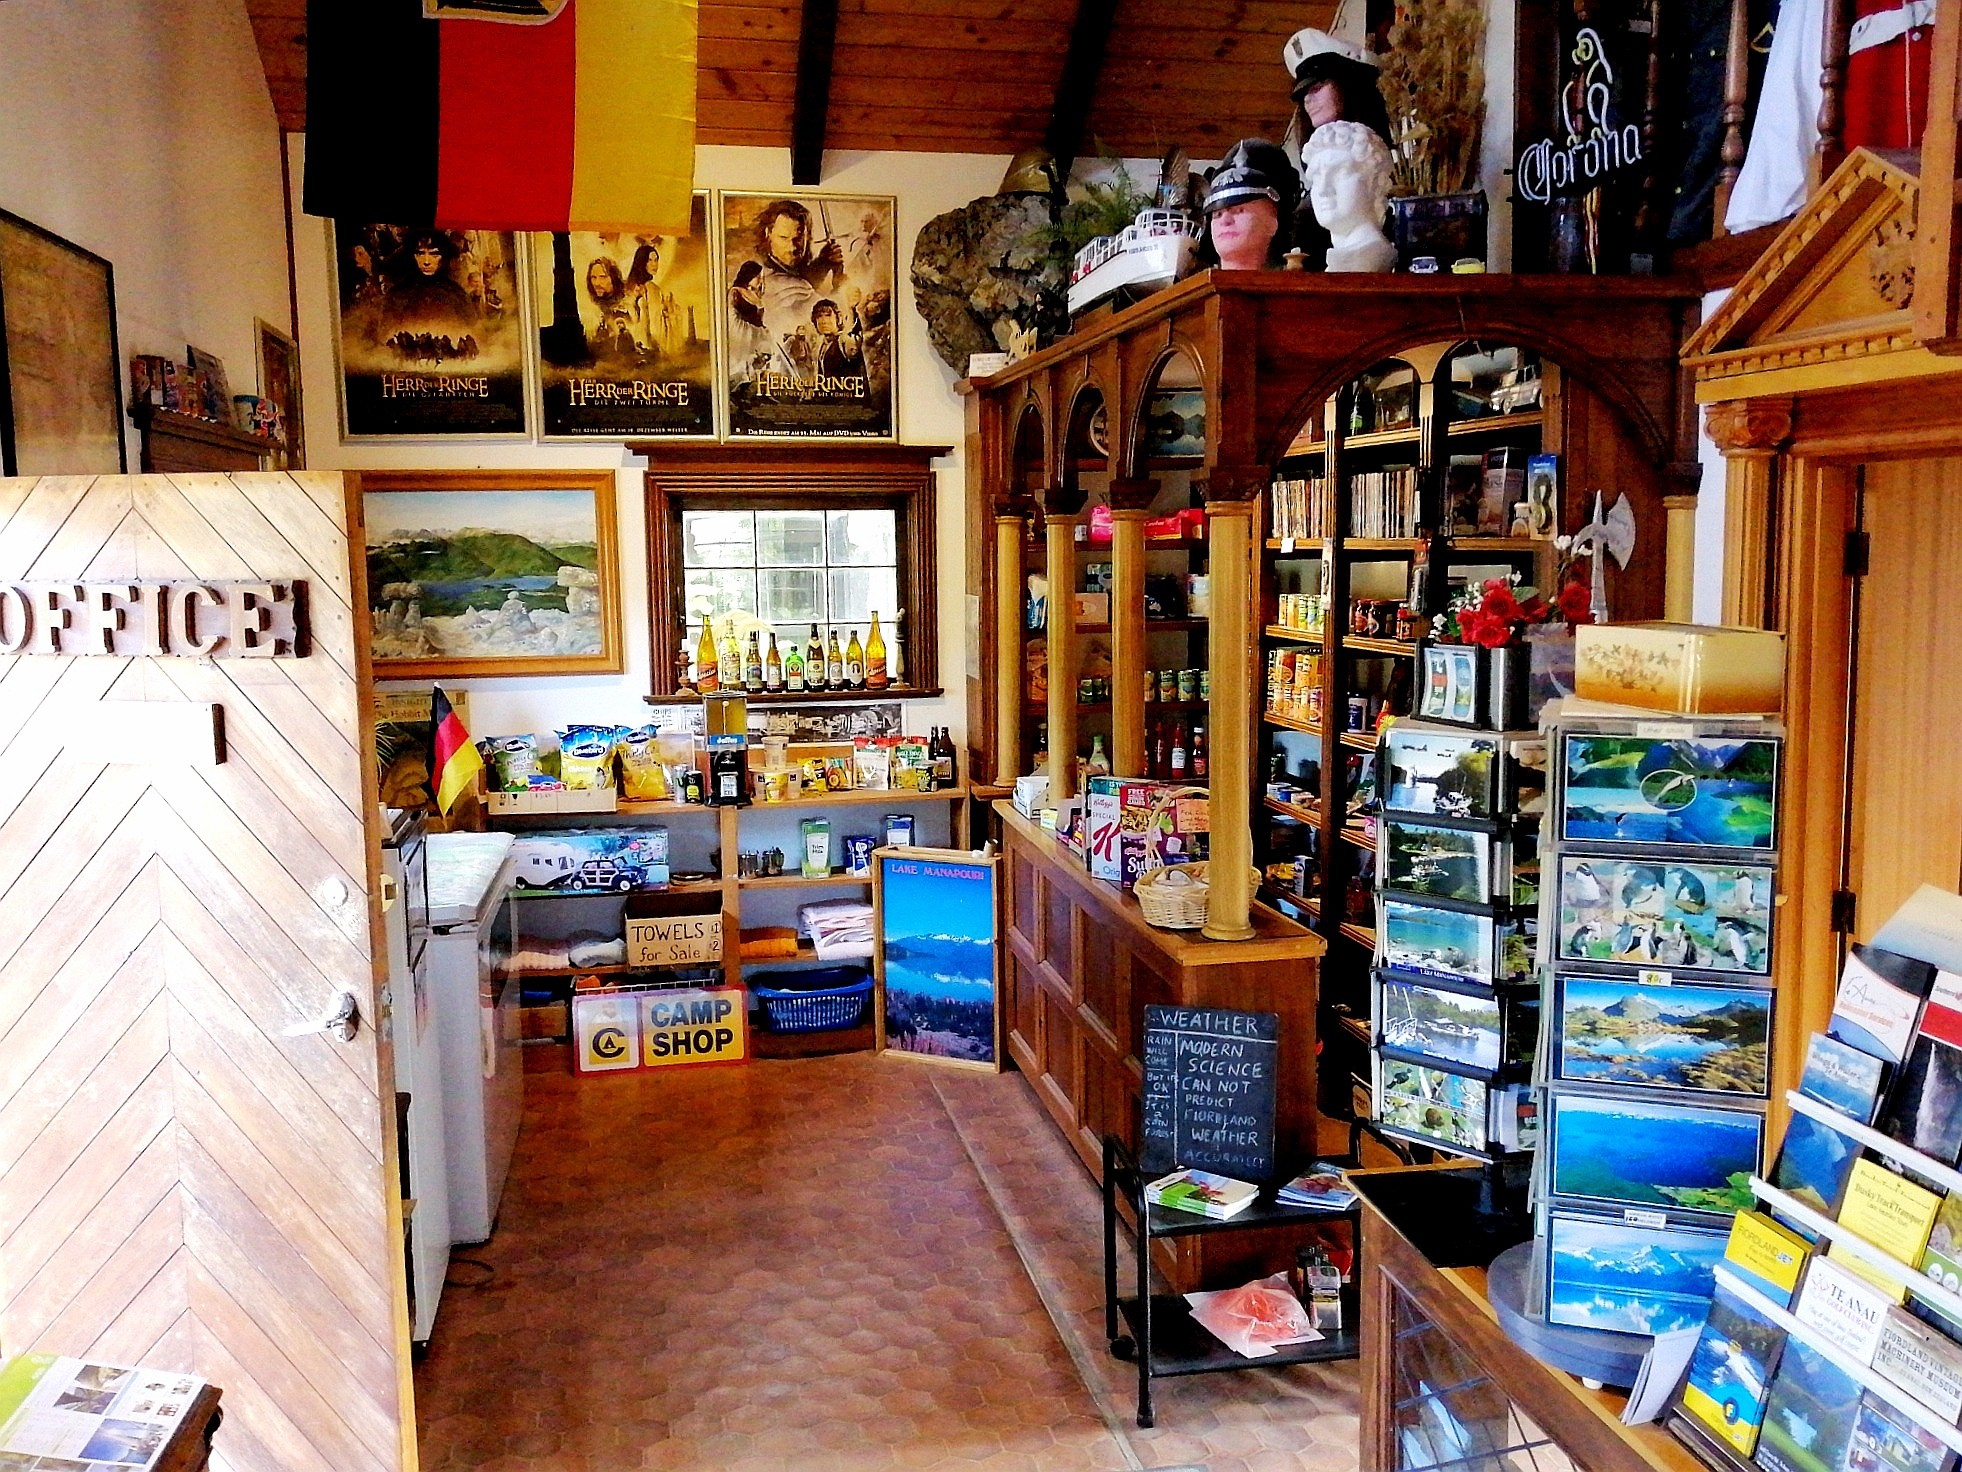 Photograph of the interior of the camp shop